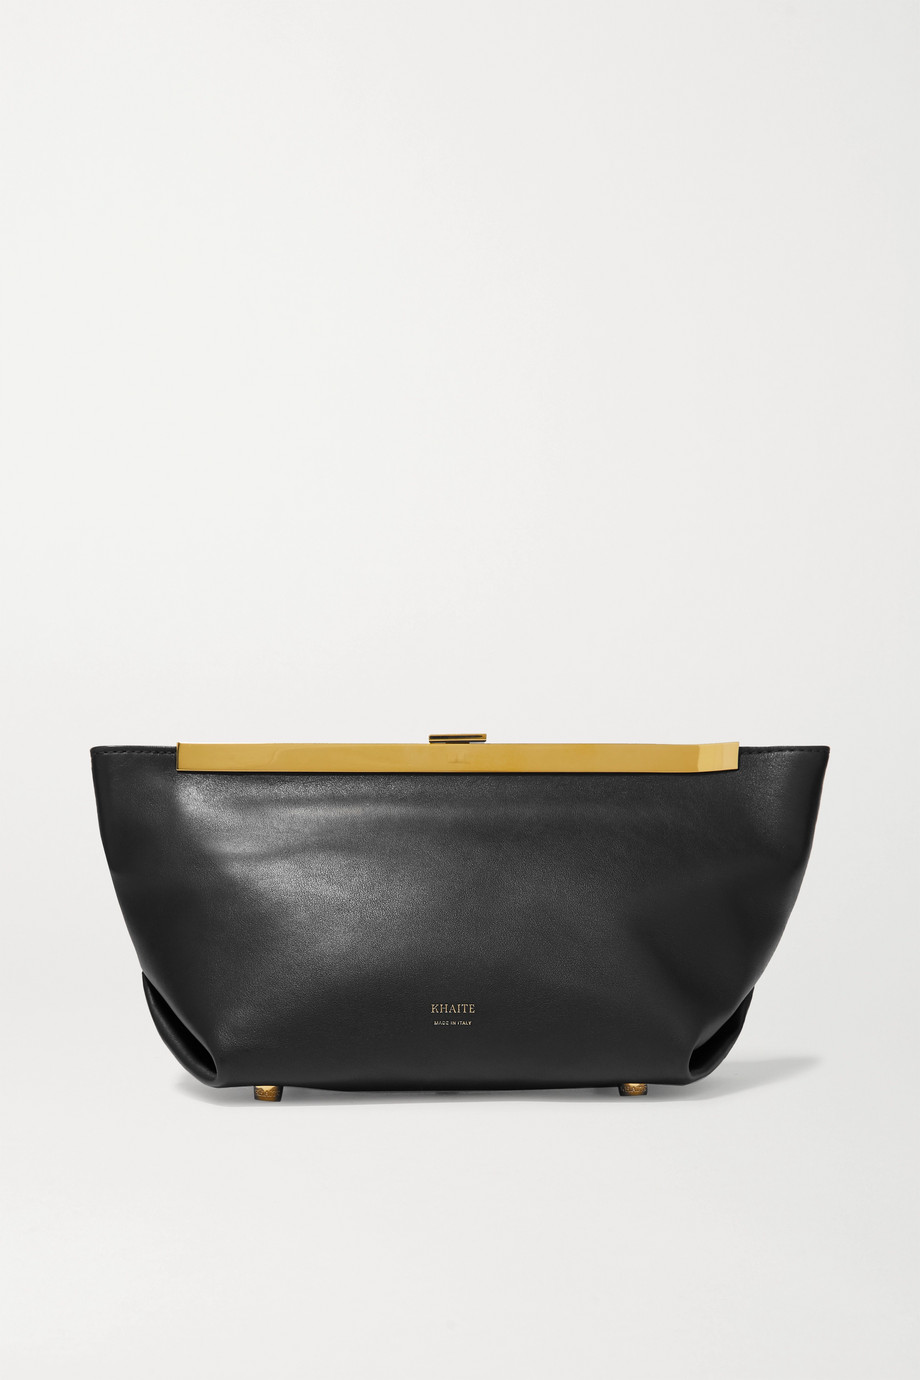 Khaite Envelope Pleat Clutch aus Leder